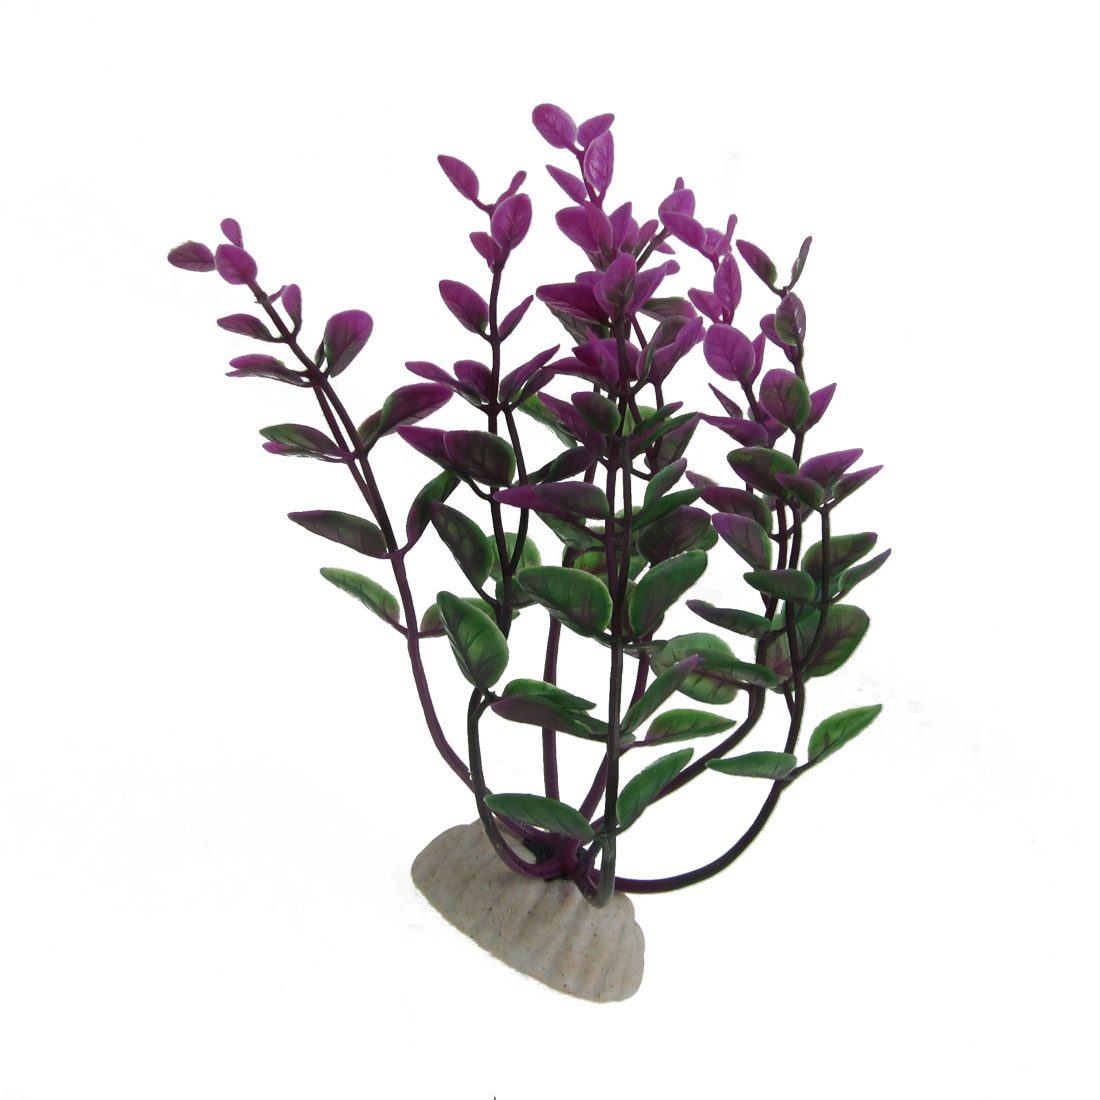 Ceramic Base Plastic Fuchsia Green Aquatic Grass Plant for Aquarium 5.9""